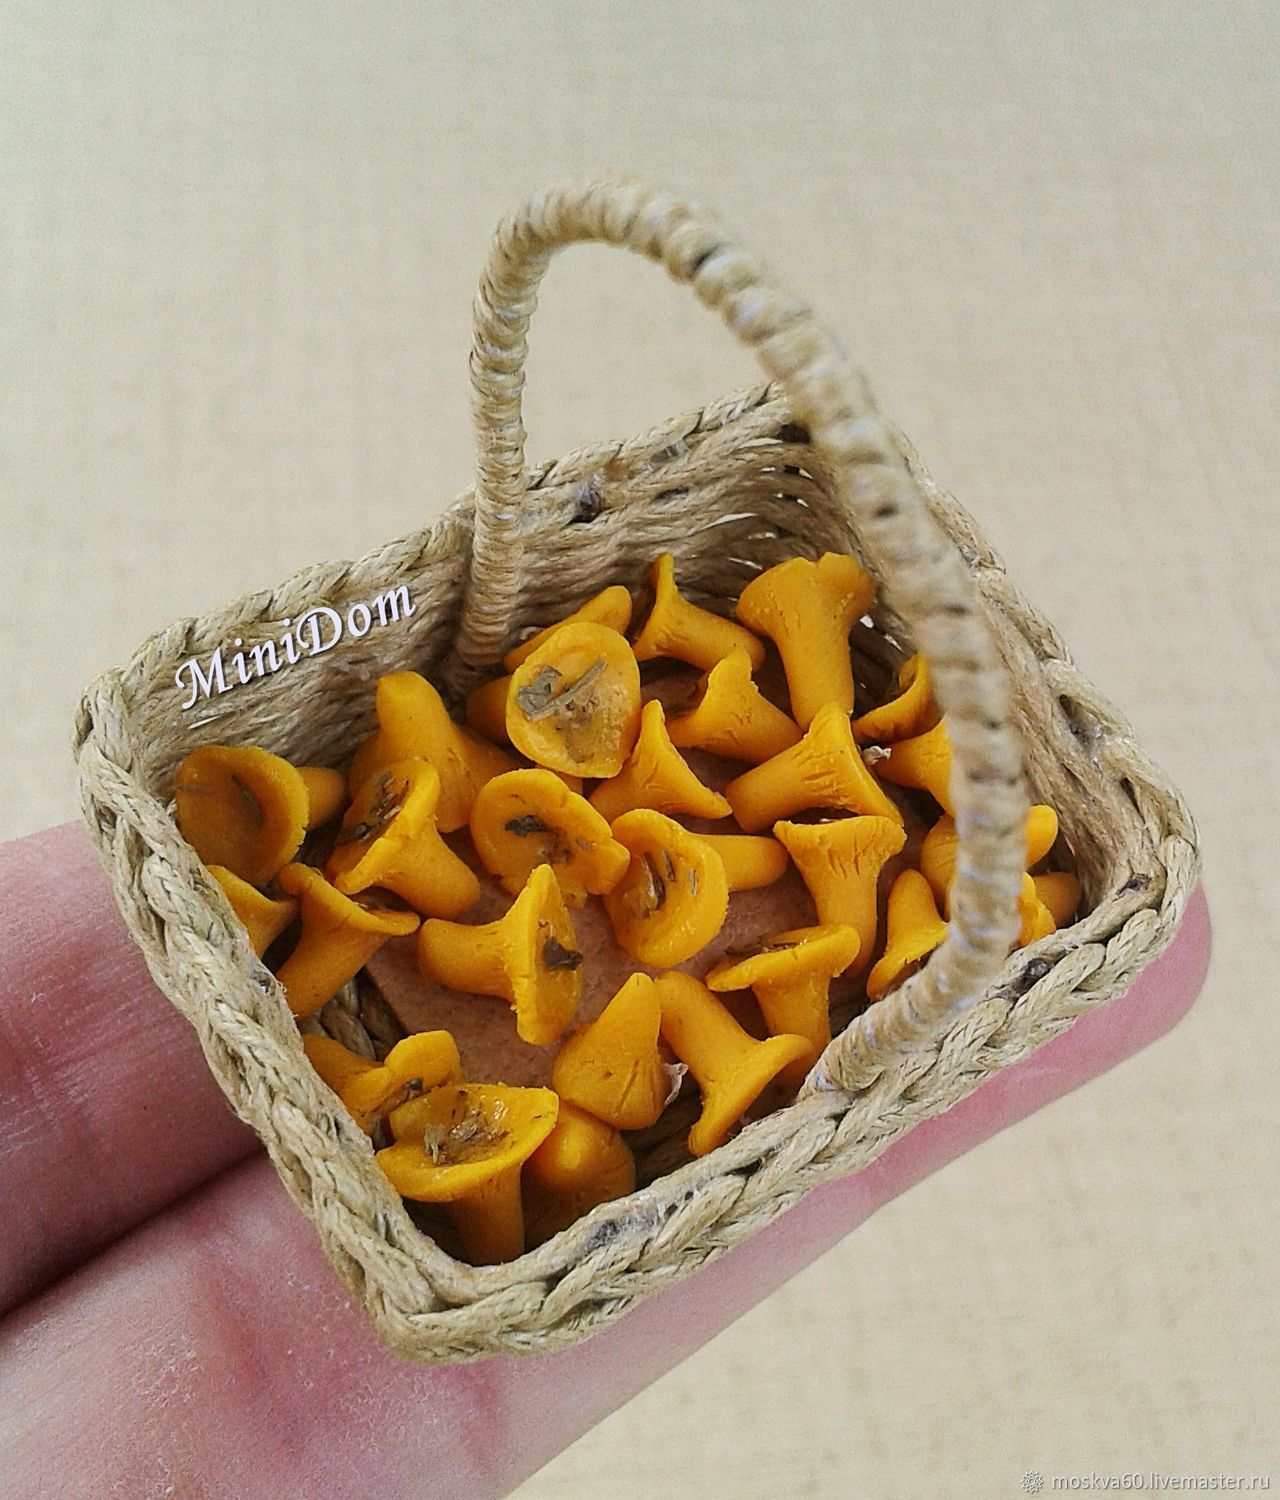 Dollhouse miniature for doll and toy accessories for dolls collectible miniature doll accessories chanterelle mushrooms basket for dolls accessories for cotton toy